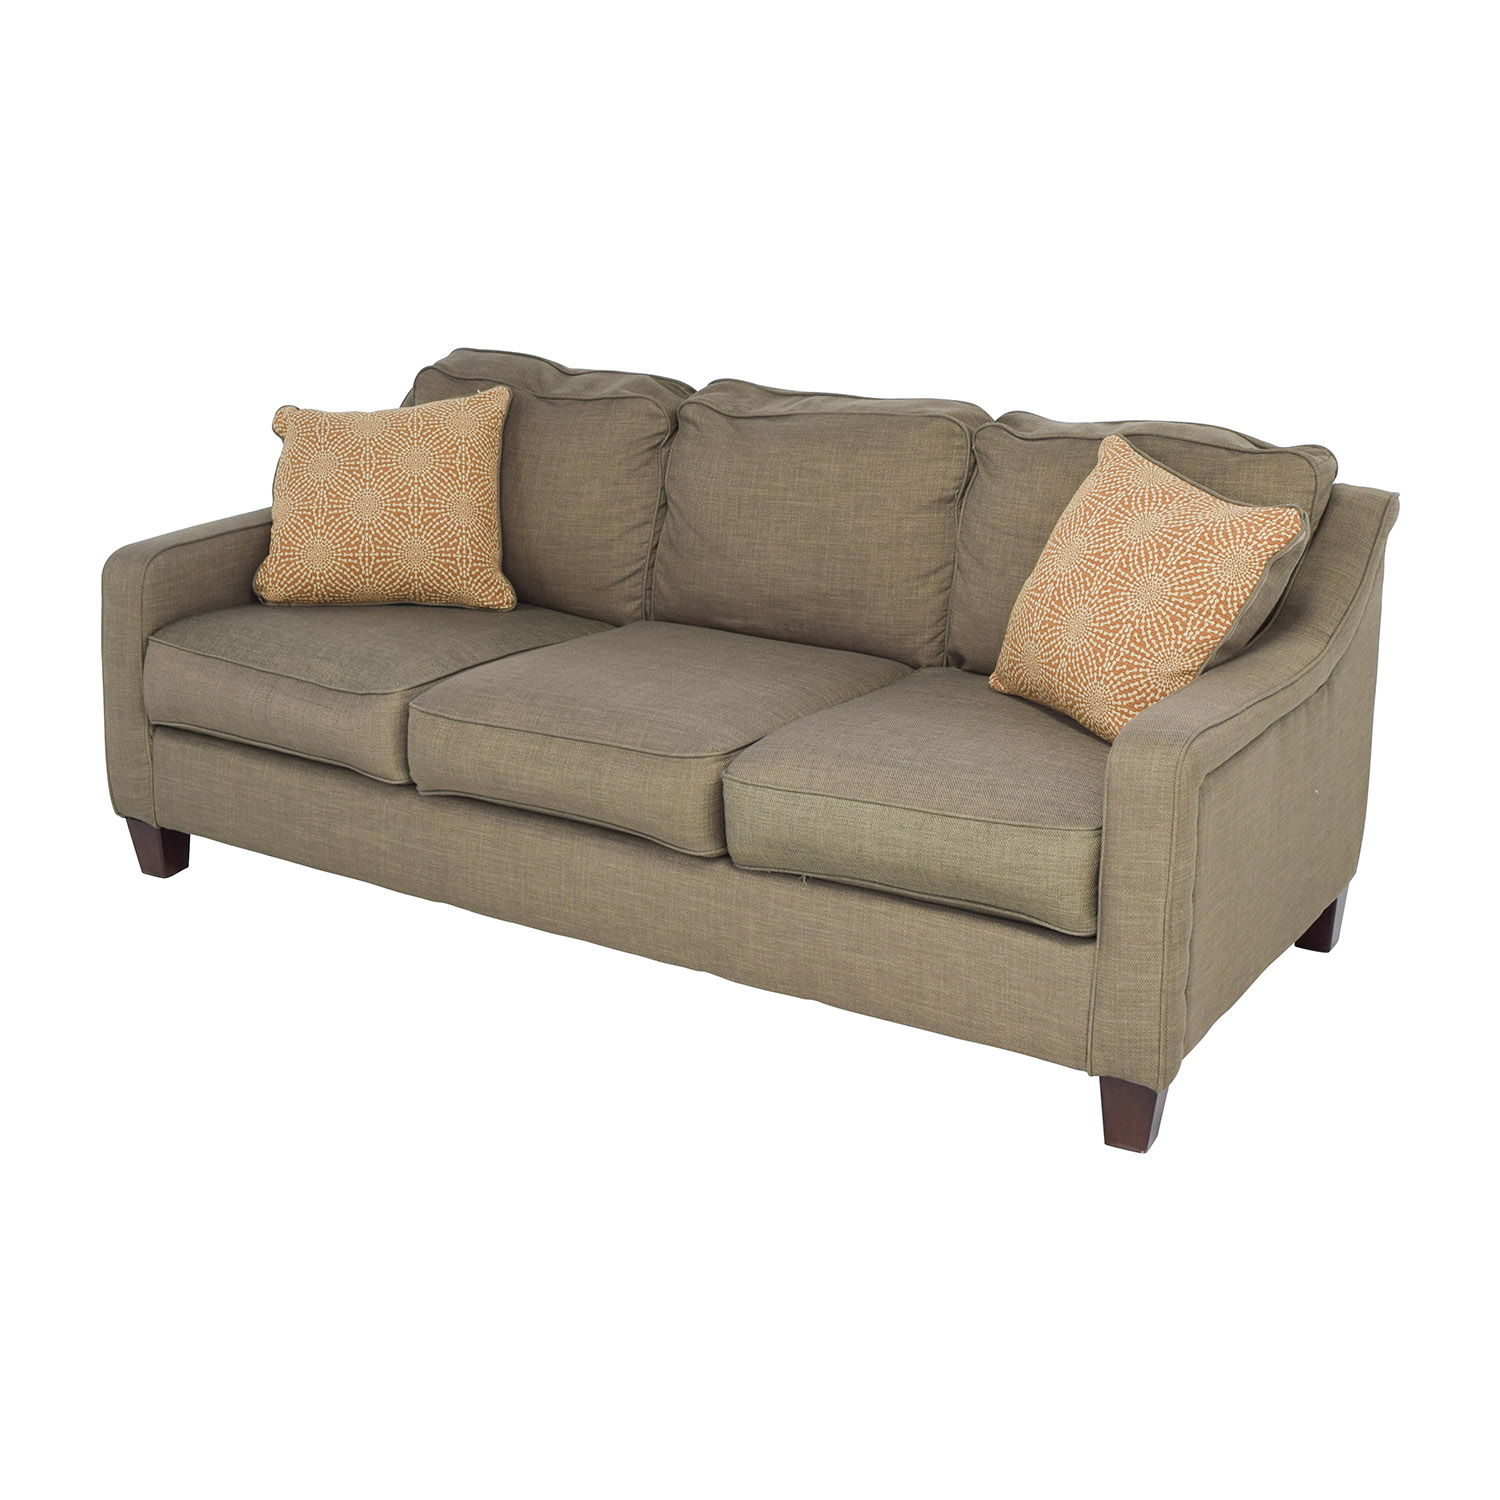 69% OFF Ashley Furniture Ashley Furniture Brown Couch Sofas